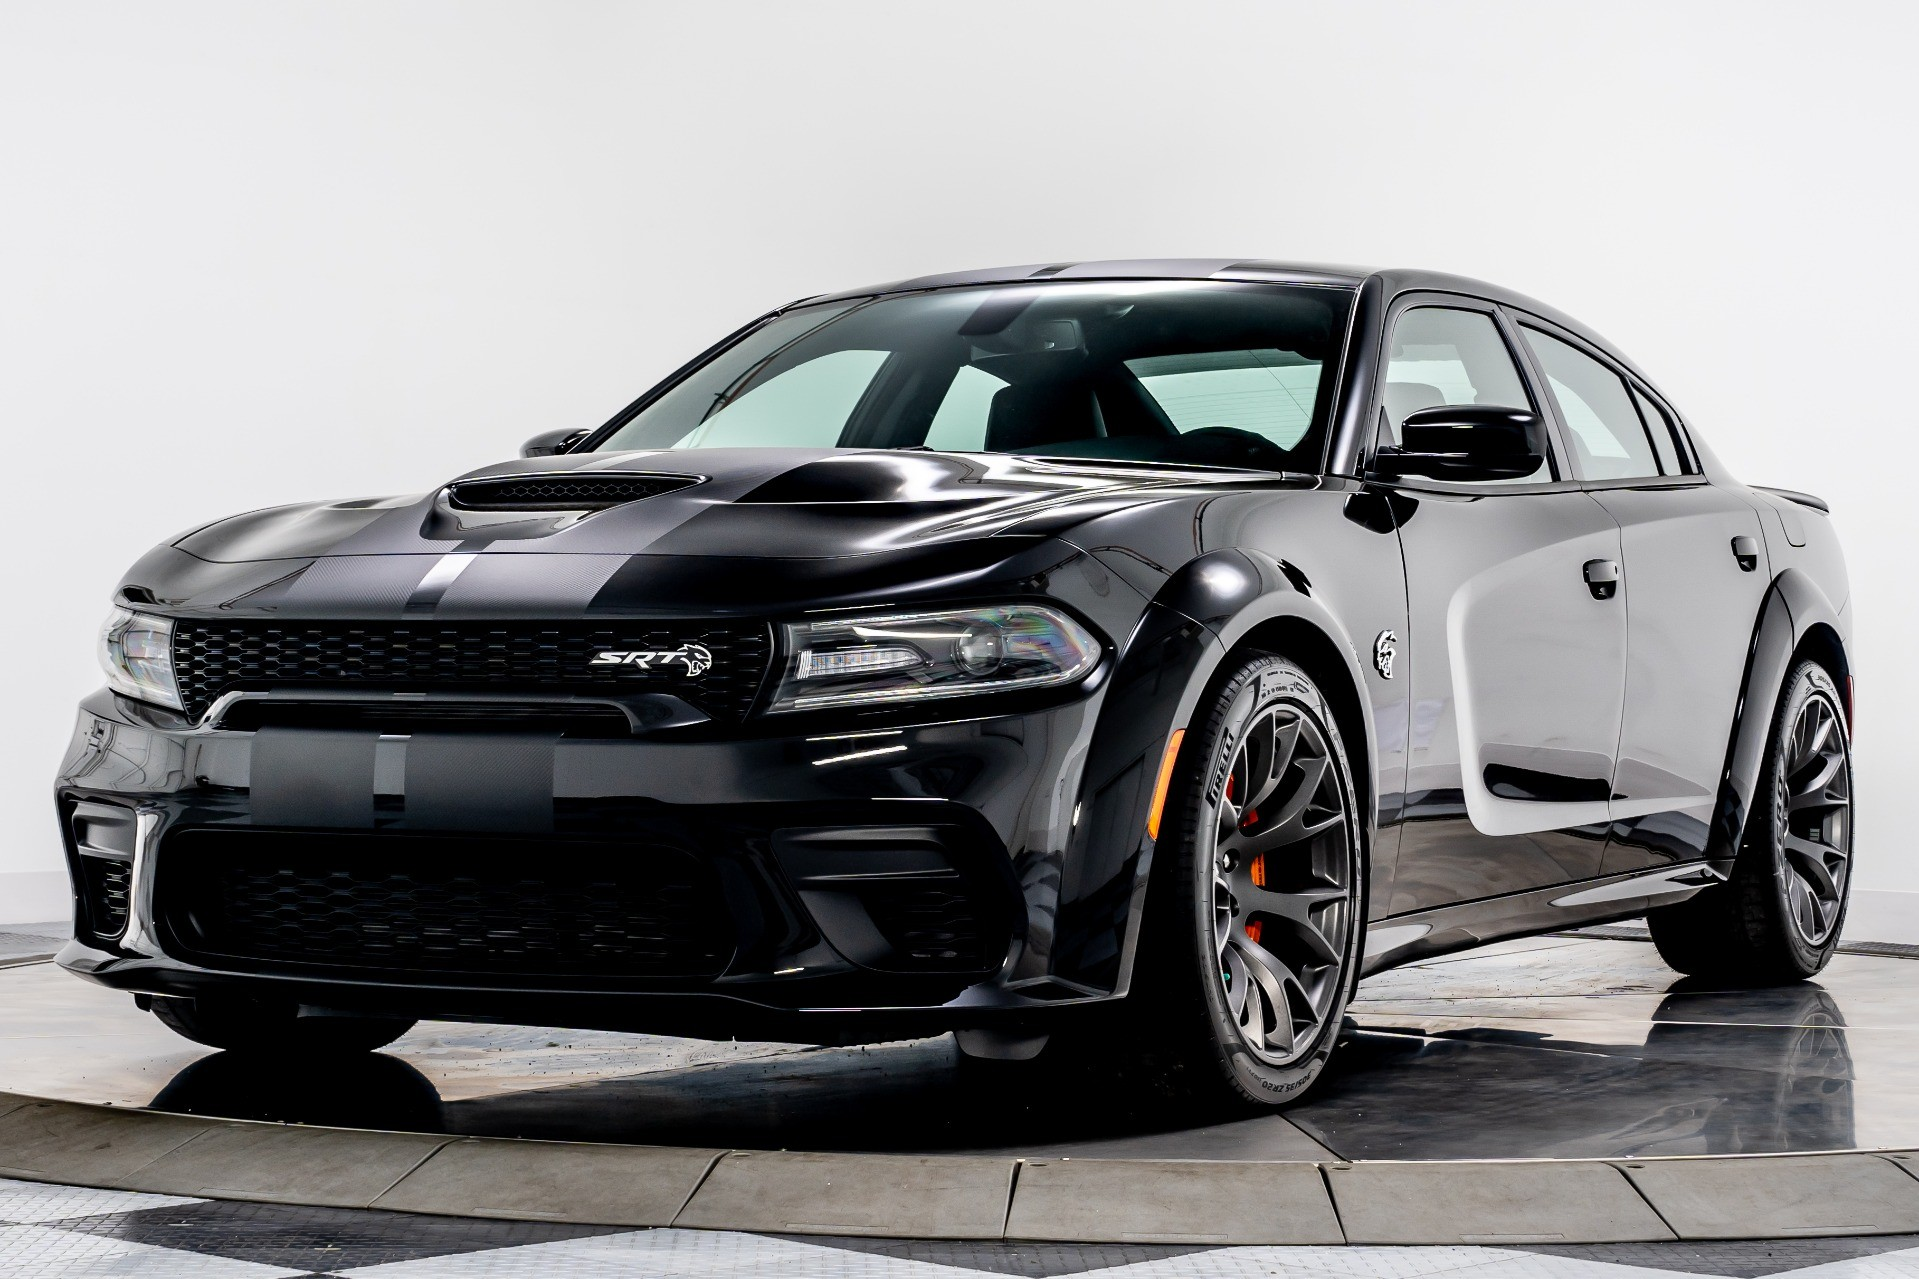 dodge charger hellcat widebody for sale Used 1 Dodge Charger SRT Hellcat Widebody For Sale ($1,1  - dodge charger hellcat widebody for sale